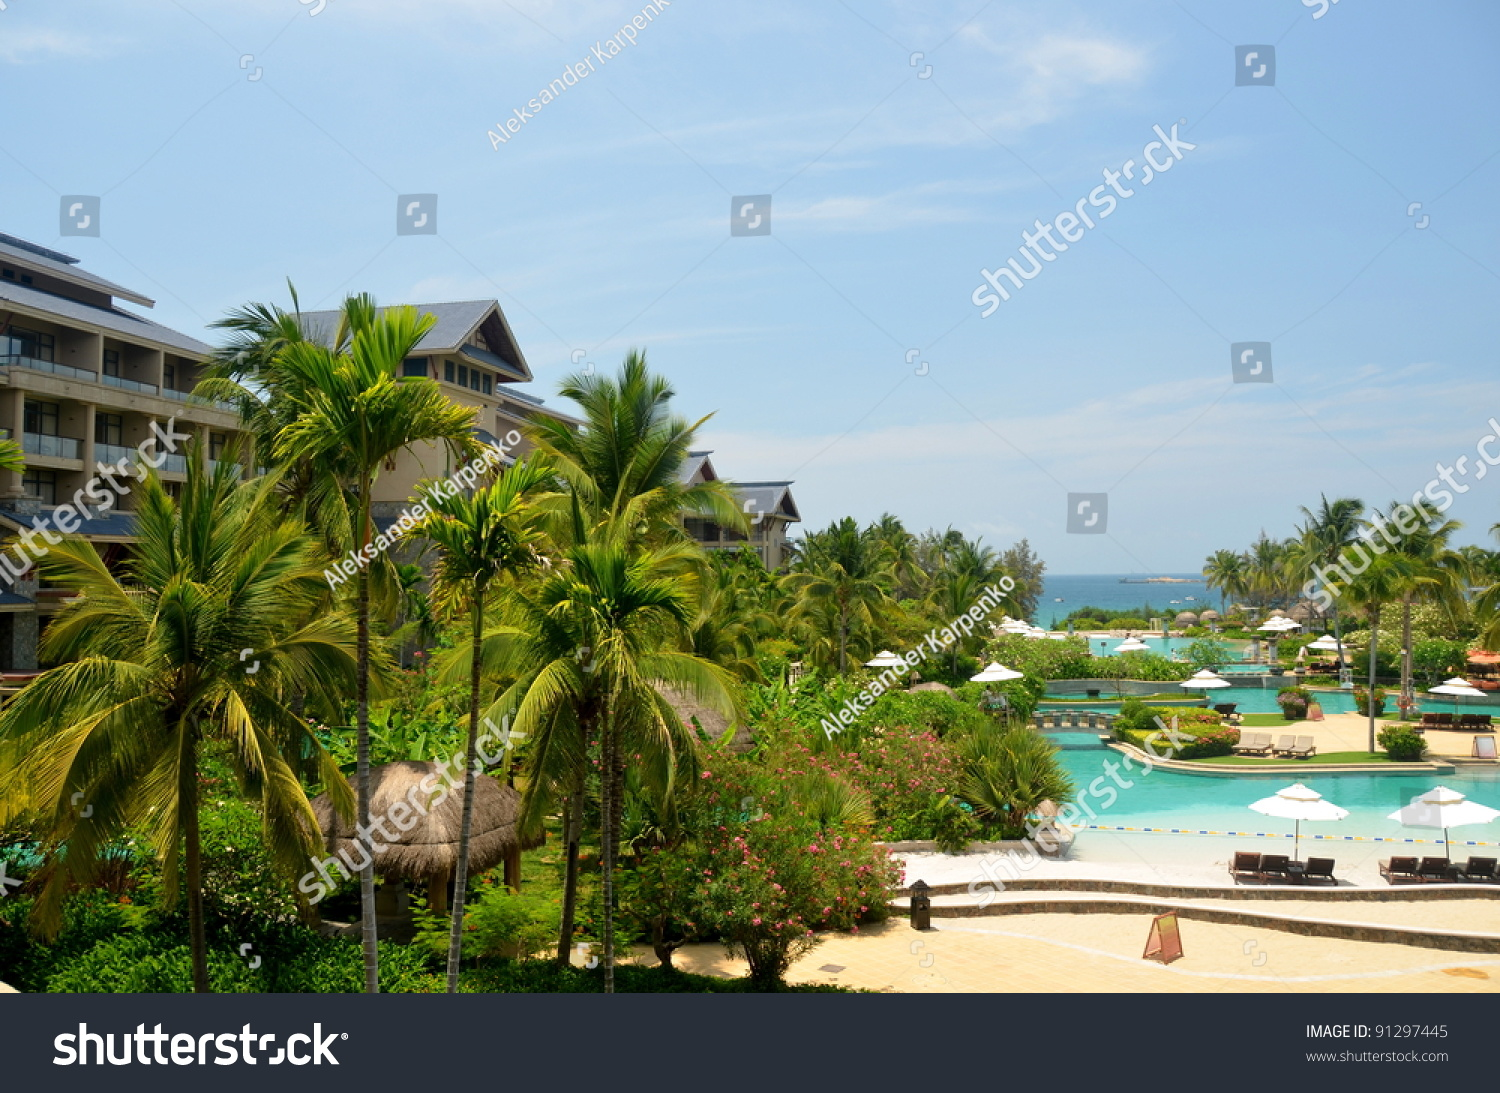 Pools On Beach South Chinese Sea Stock Photo 91297445